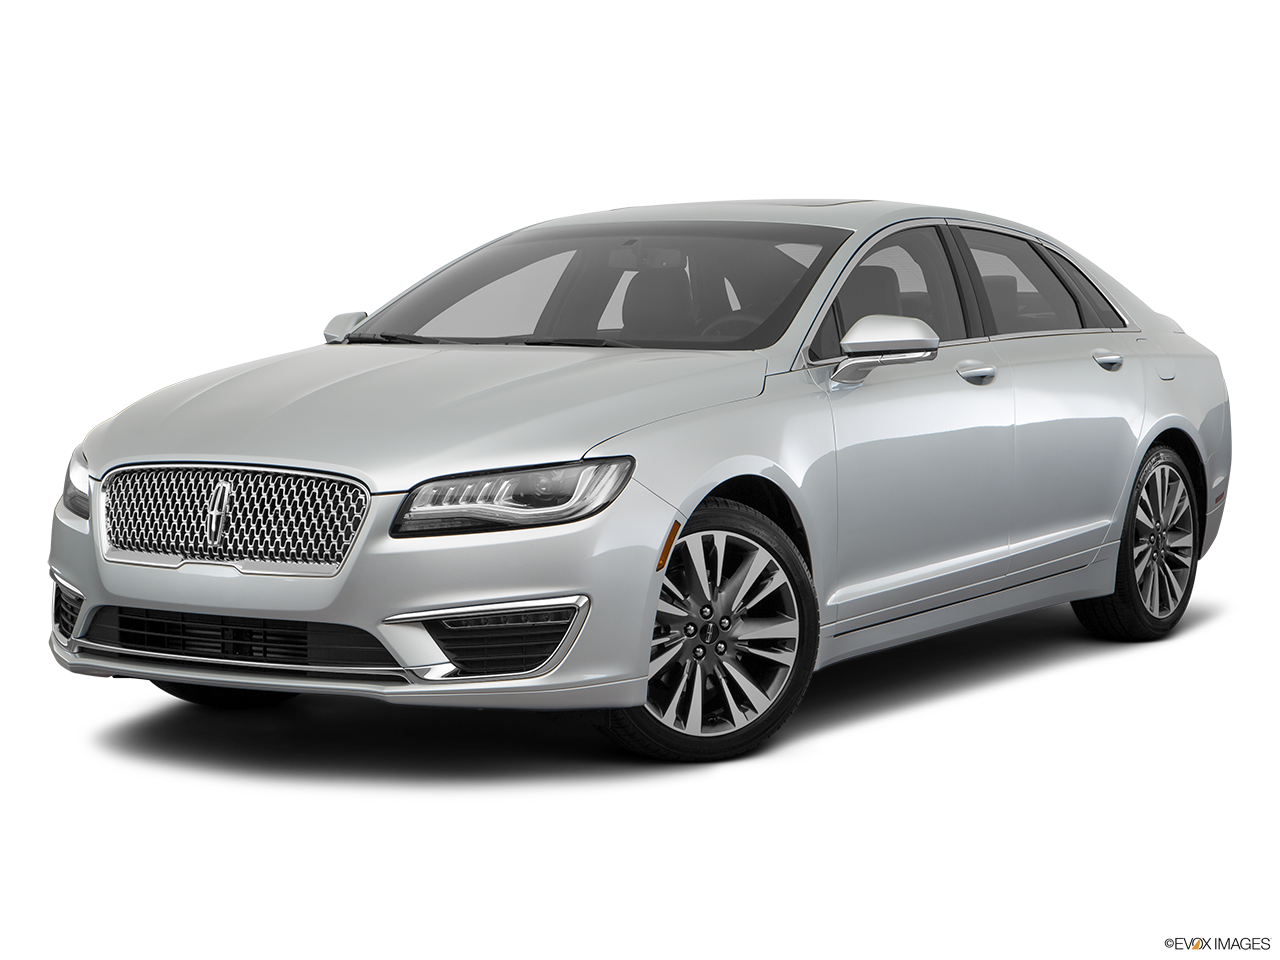 Test Drive A 2017 Lincoln MKZ at Galpin Lincoln in Los Angeles